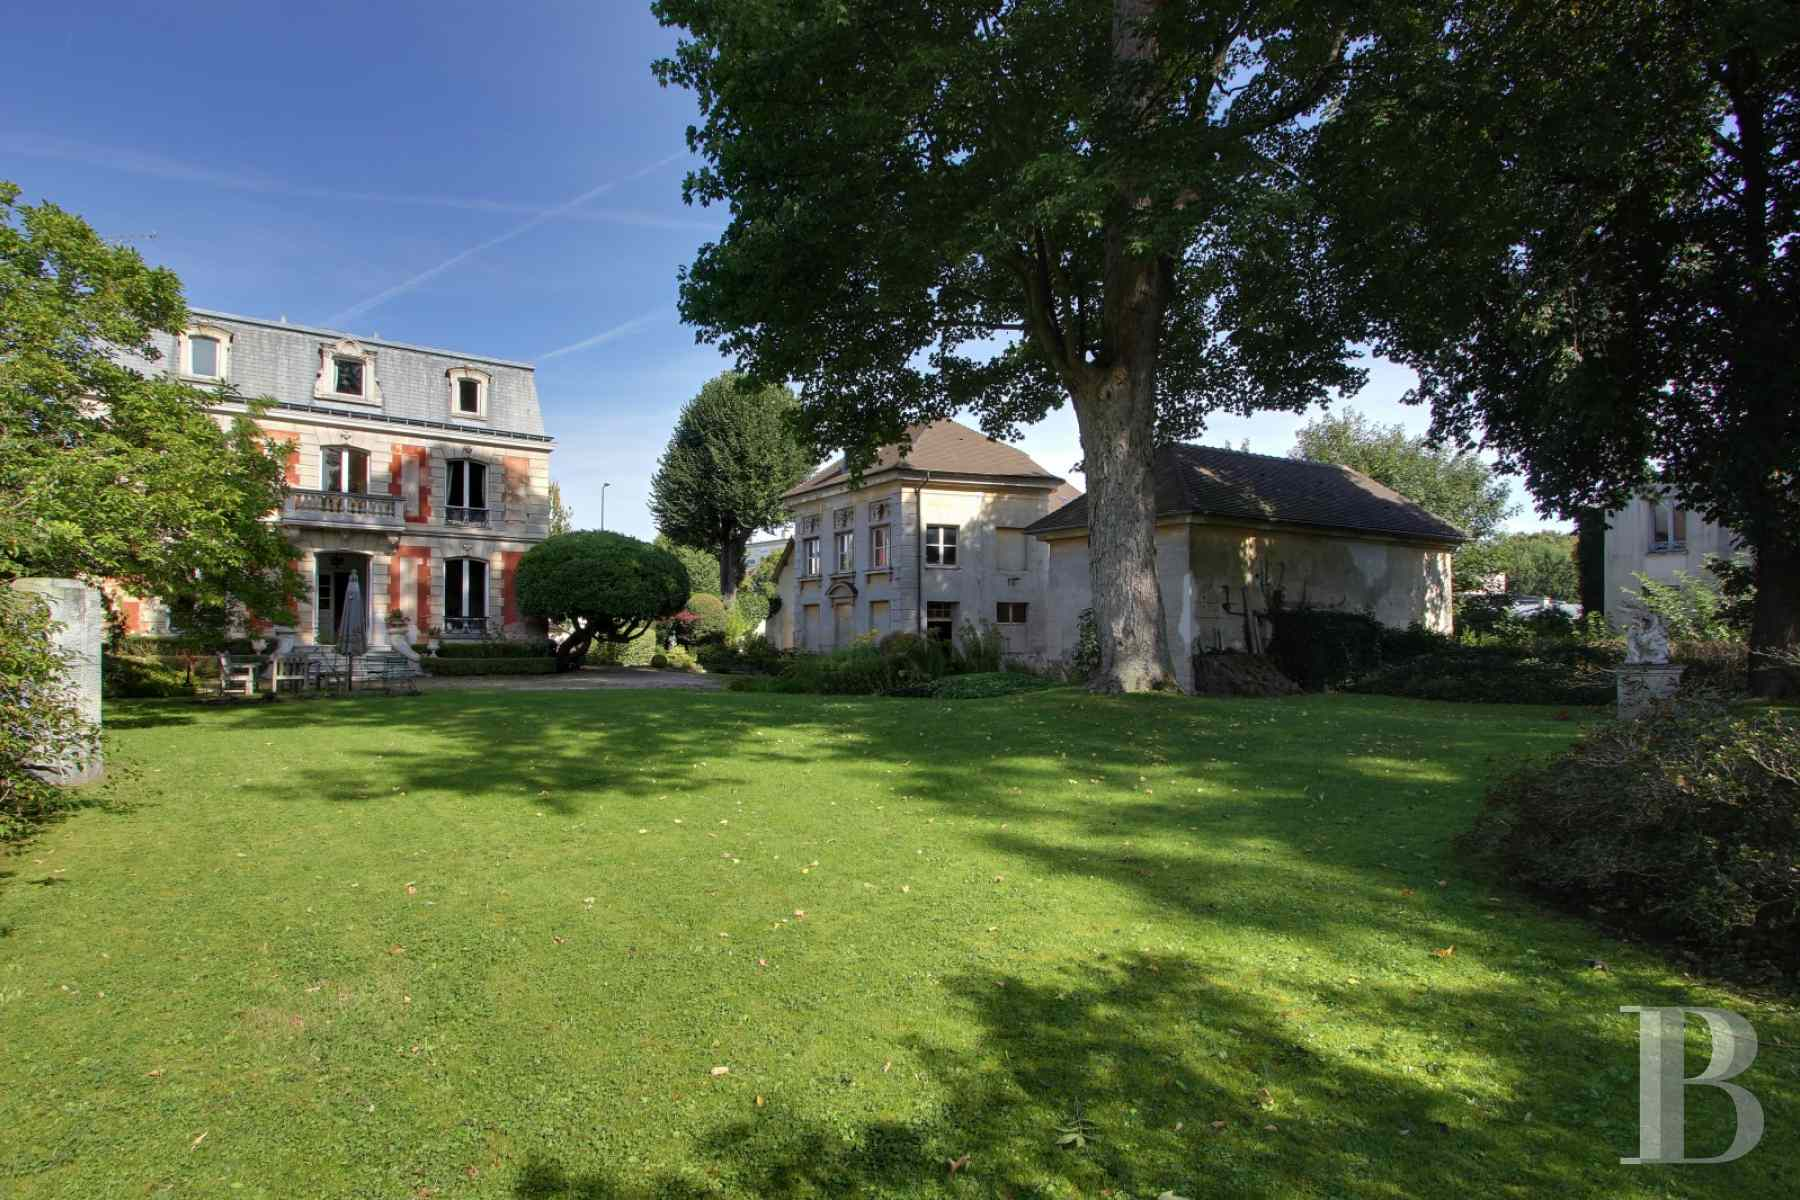 property for sale France paris antony property - 2 zoom